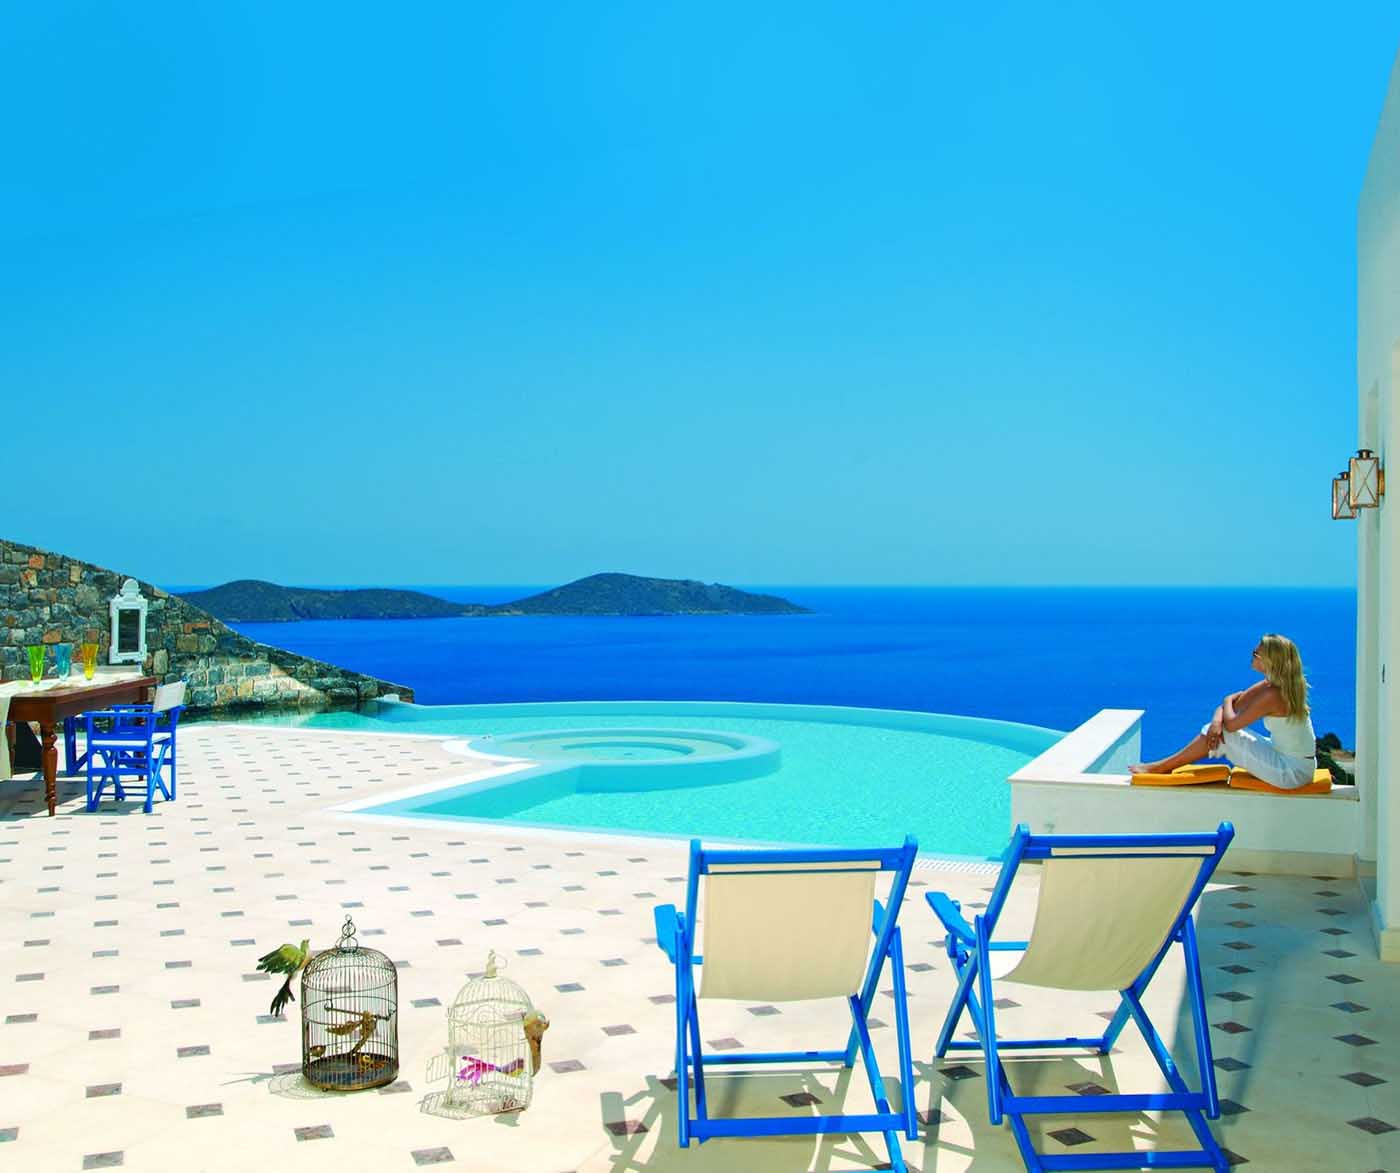 Mykonos hotels & resorts, 50% discount for early bookings, Mykonos, Cyclades Islands, Greece, Europe